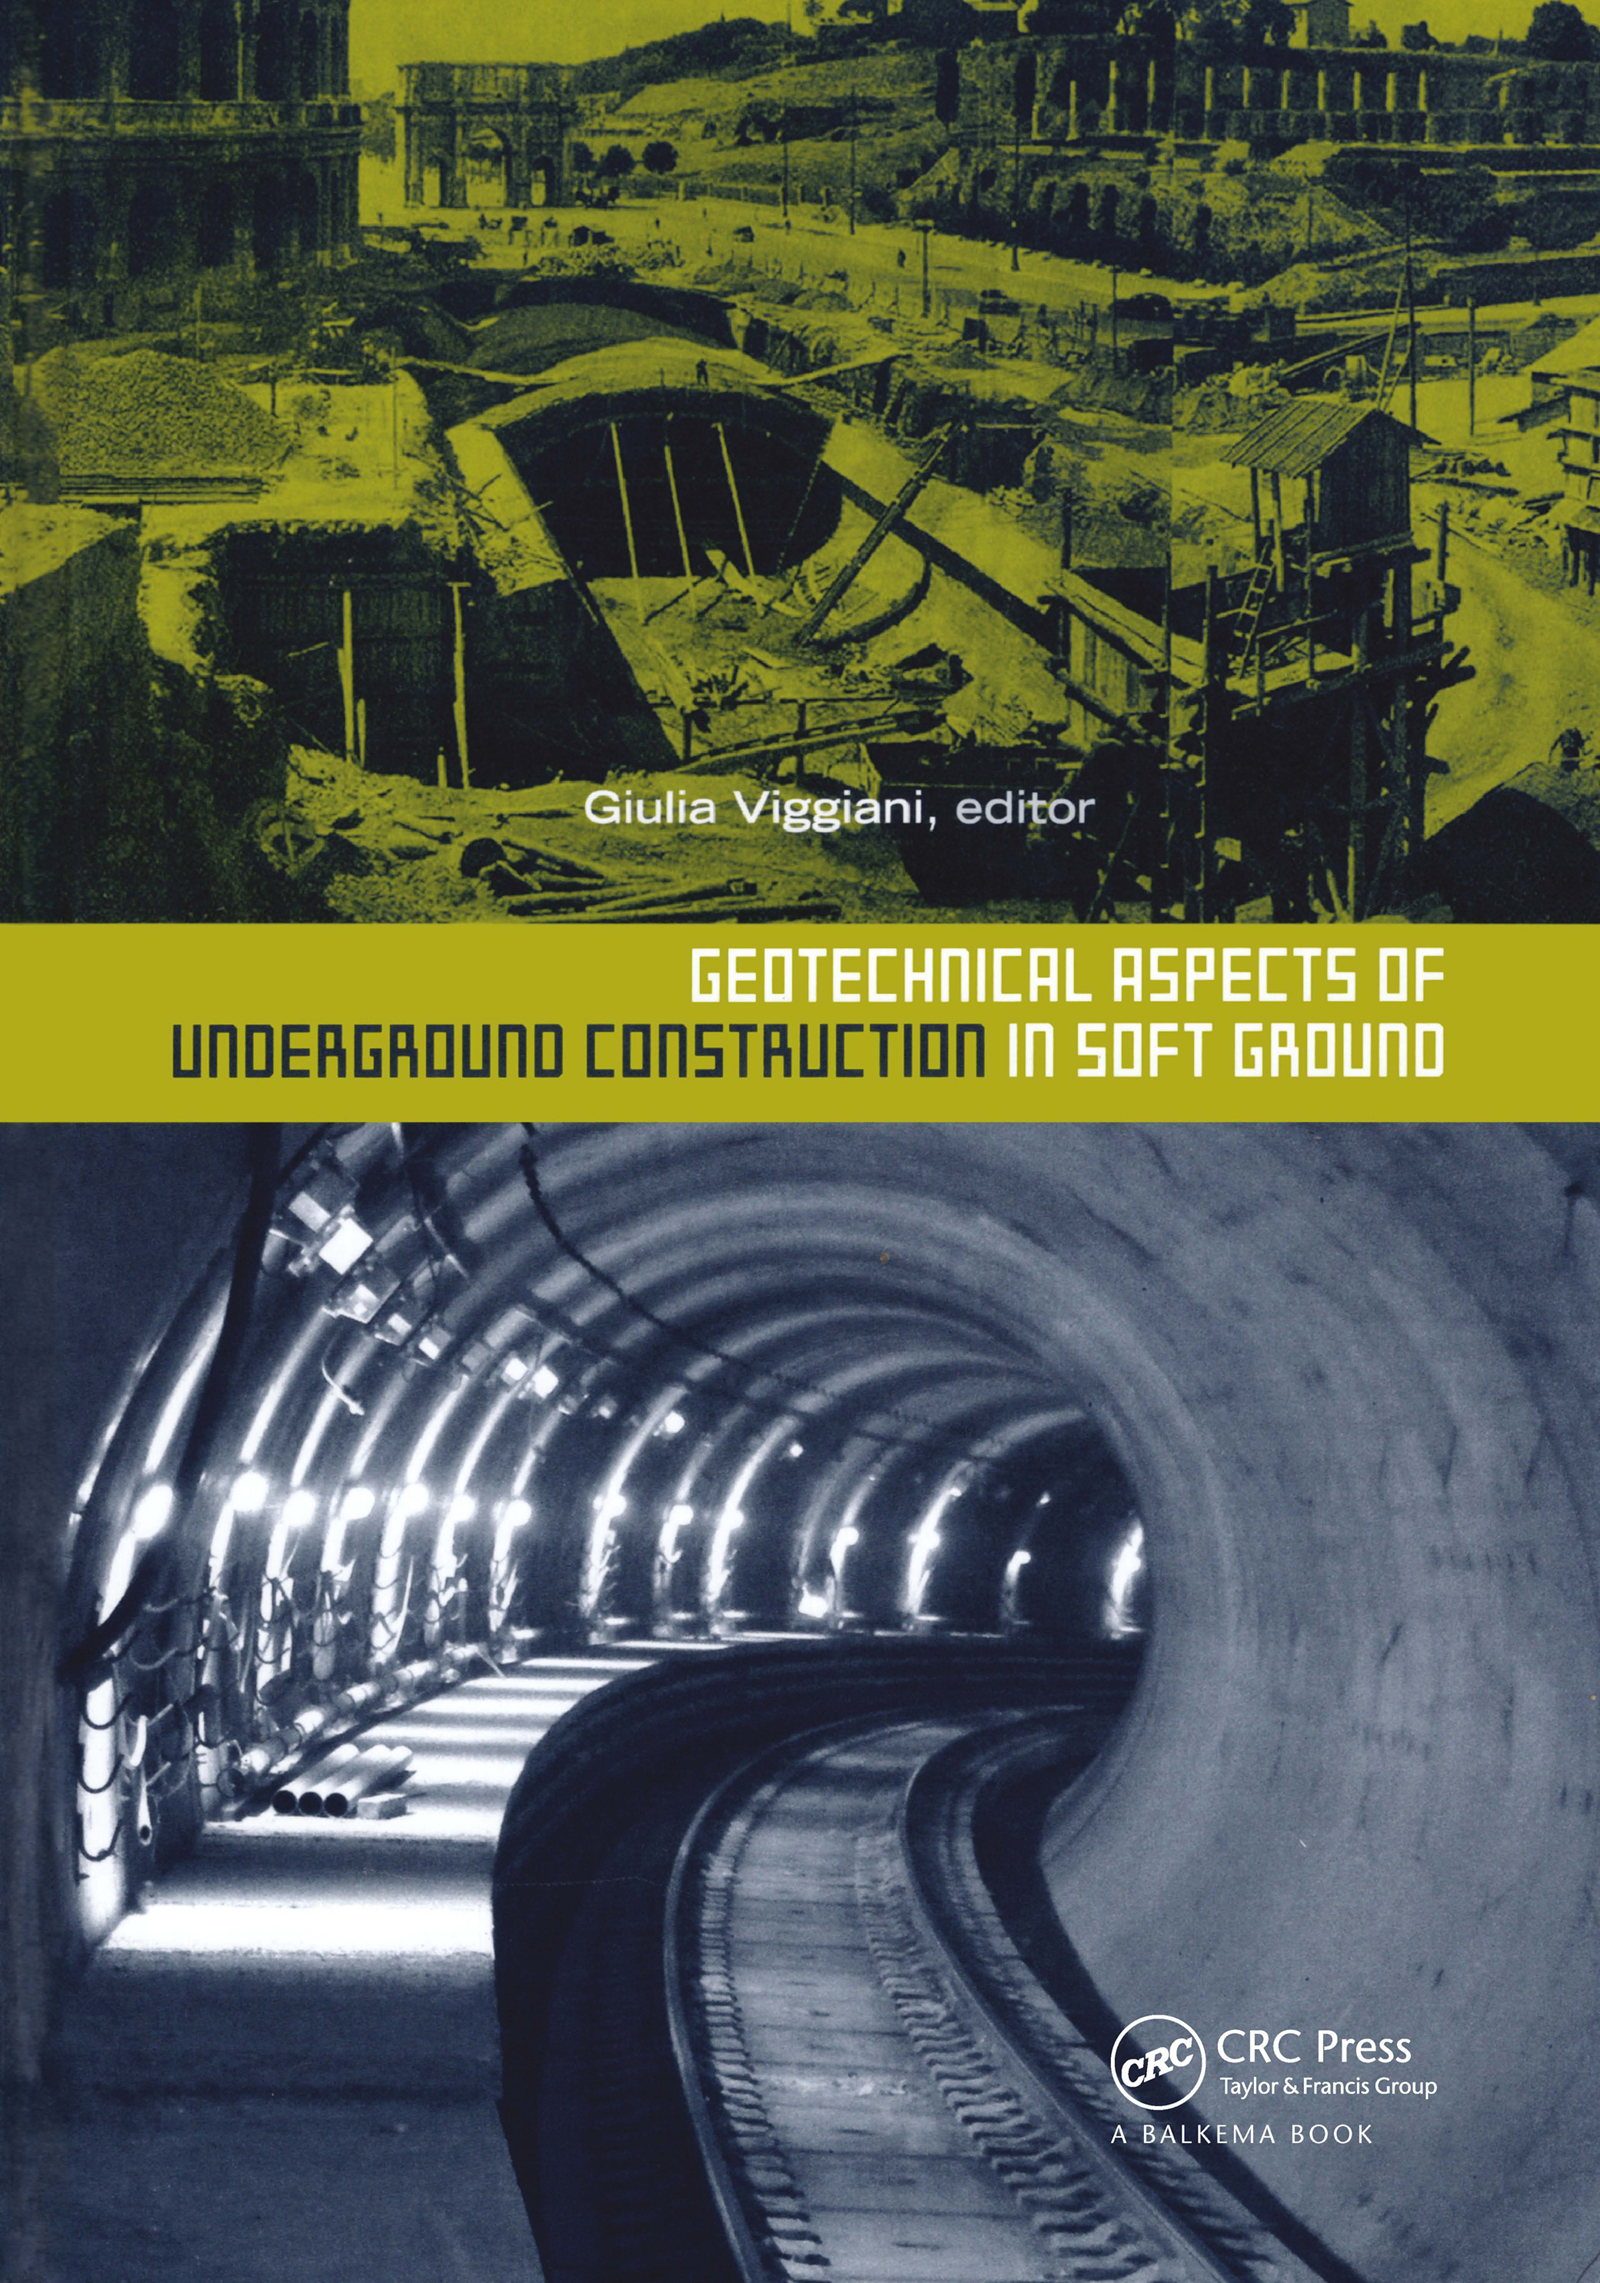 Geotechnical Aspects of Underground Construction in Soft Ground (Pack - Book and CD) book cover